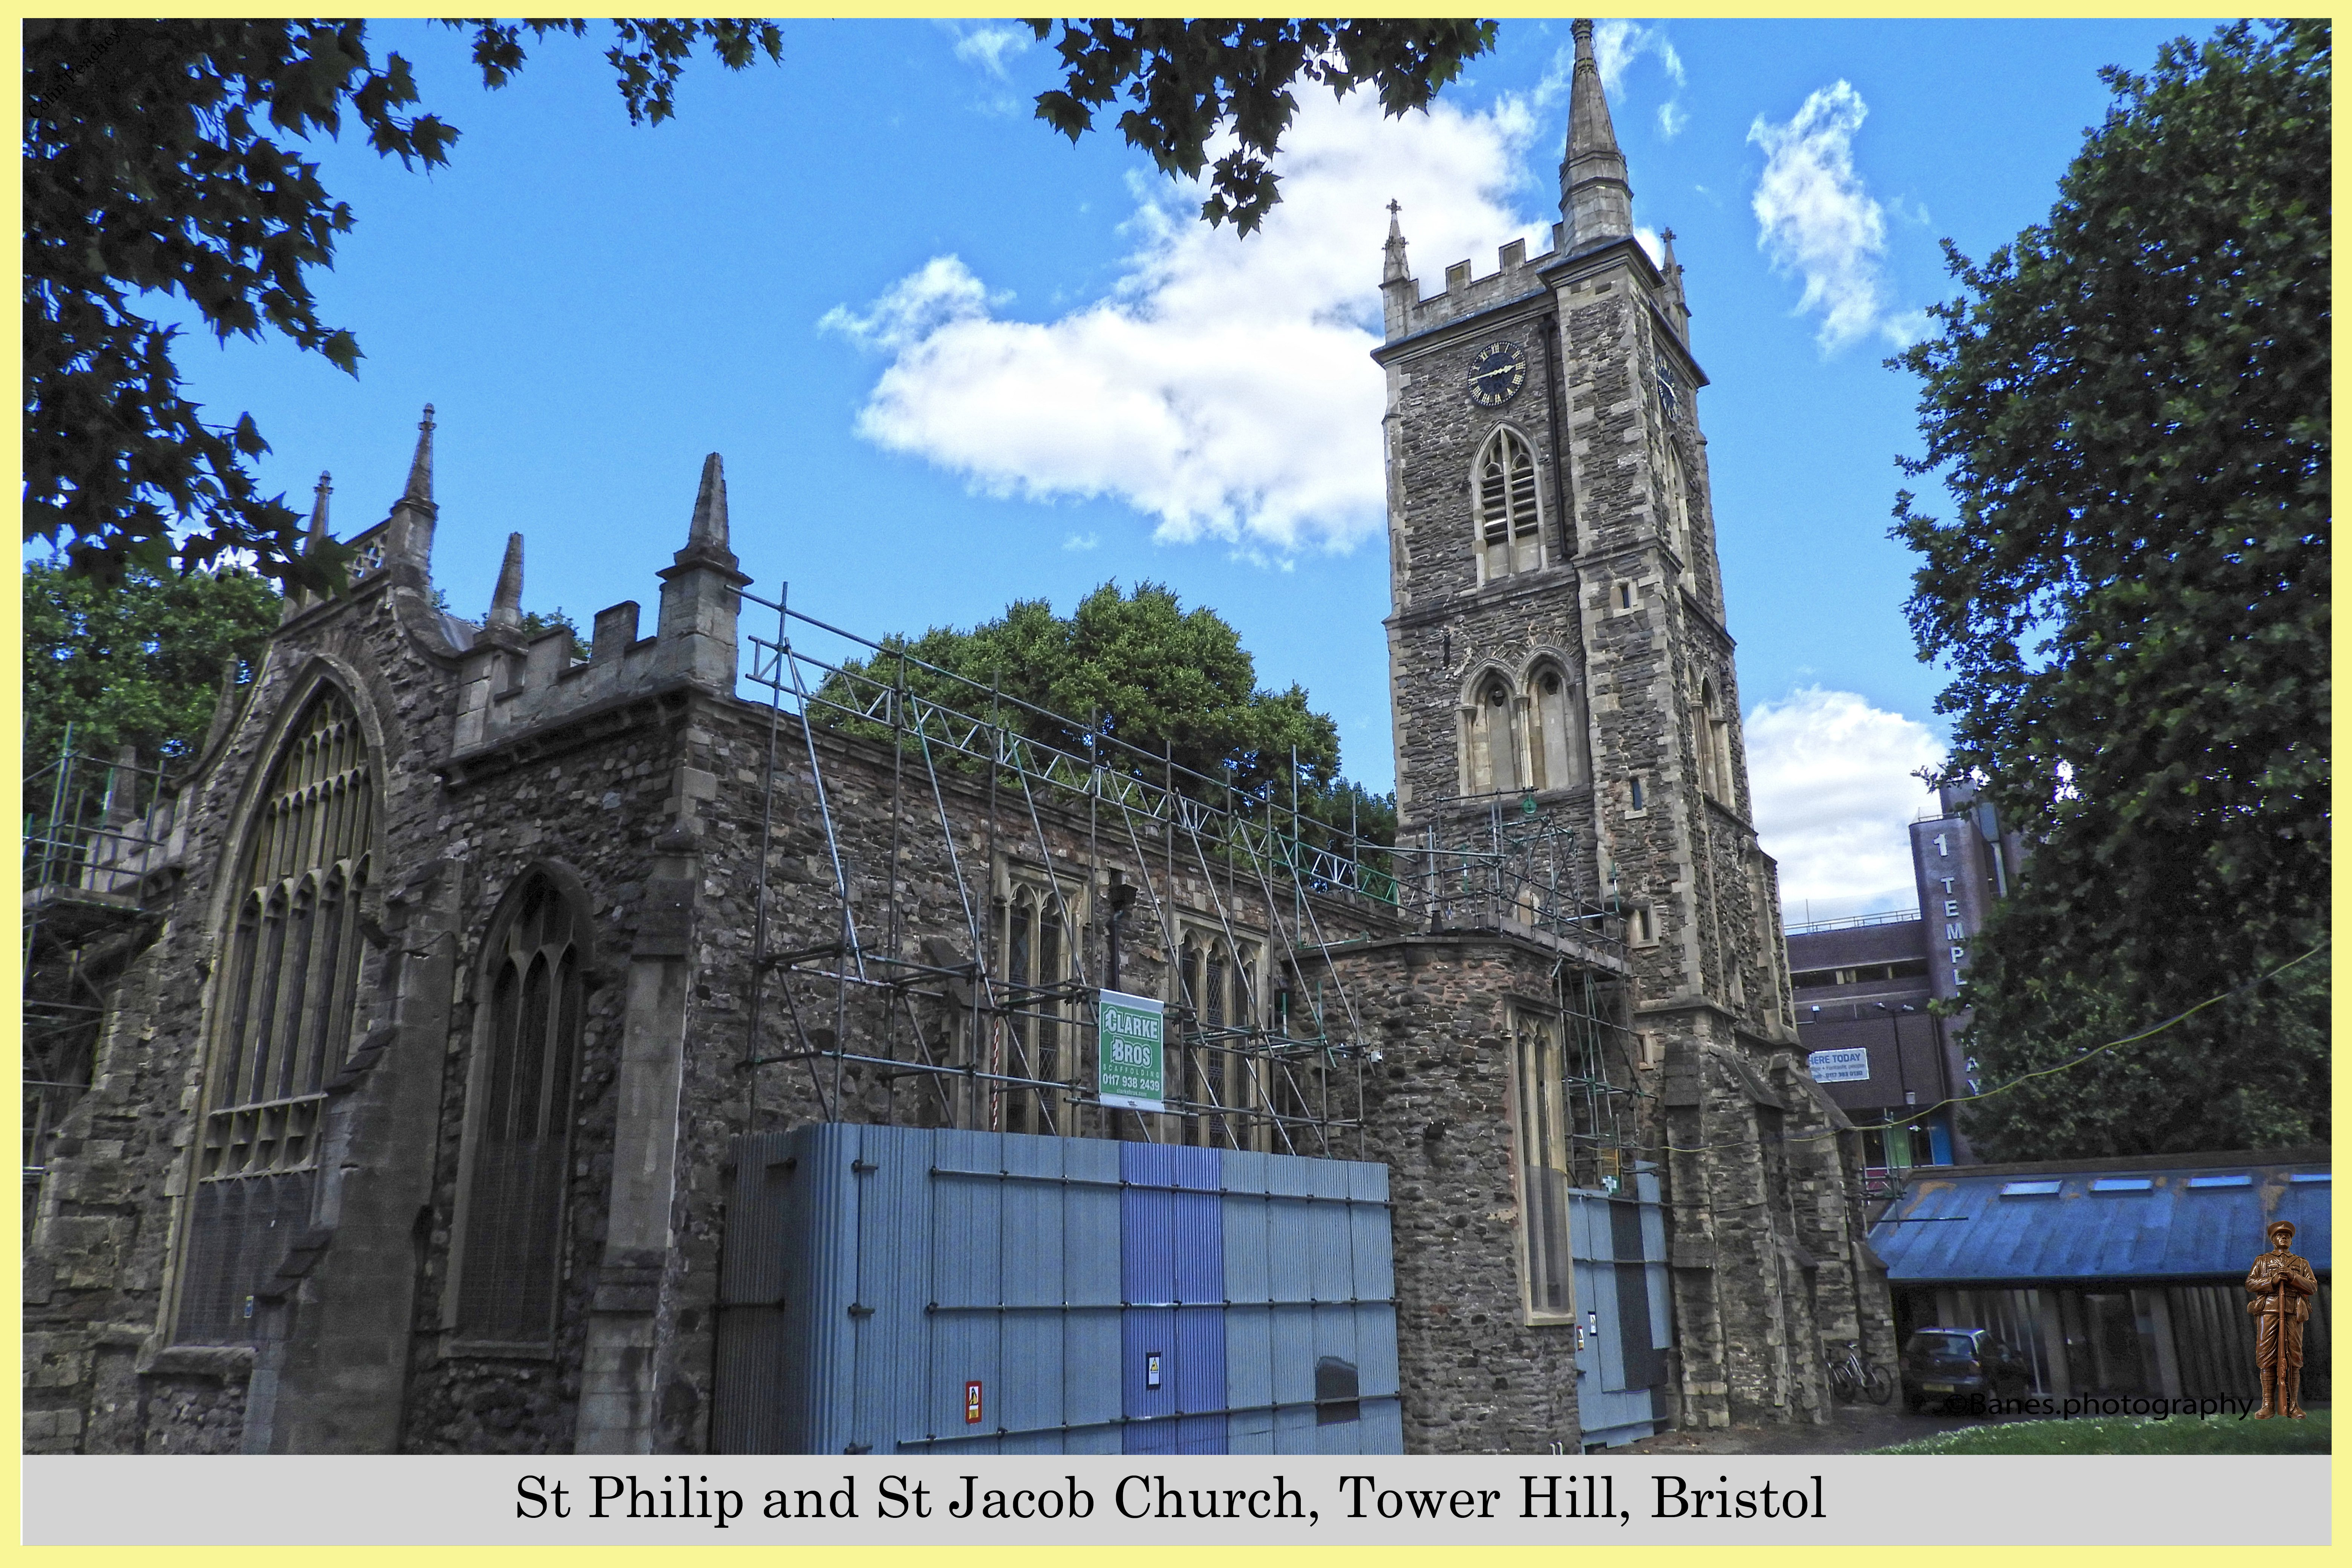 St Philip and St Jacob Church, Tower Hill, Bristol